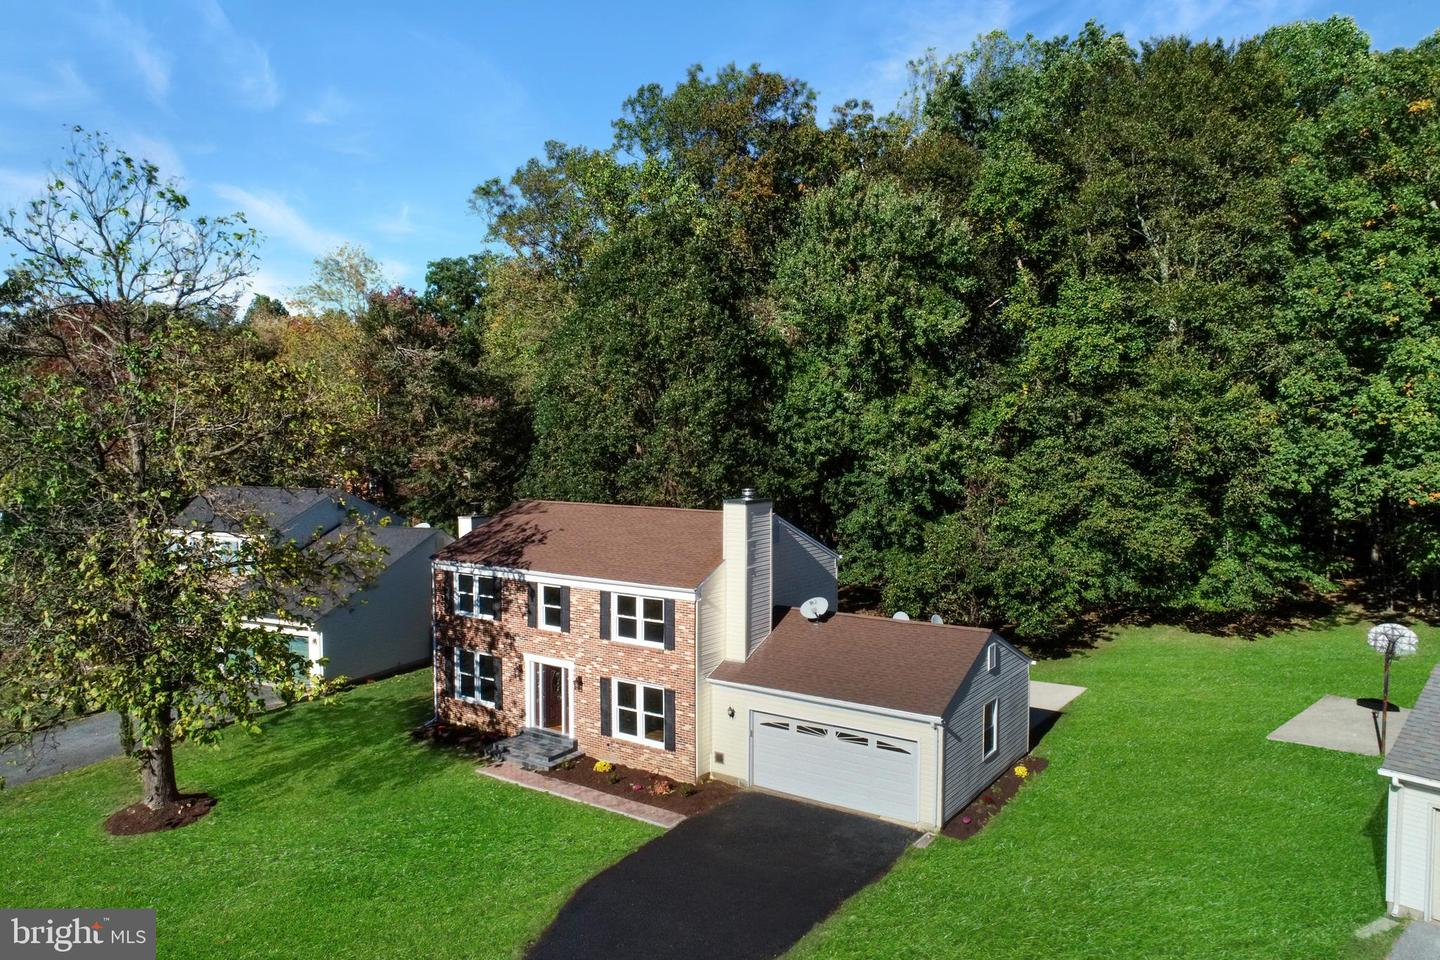 15320 BAILEYS LANE, SILVER SPRING, Maryland